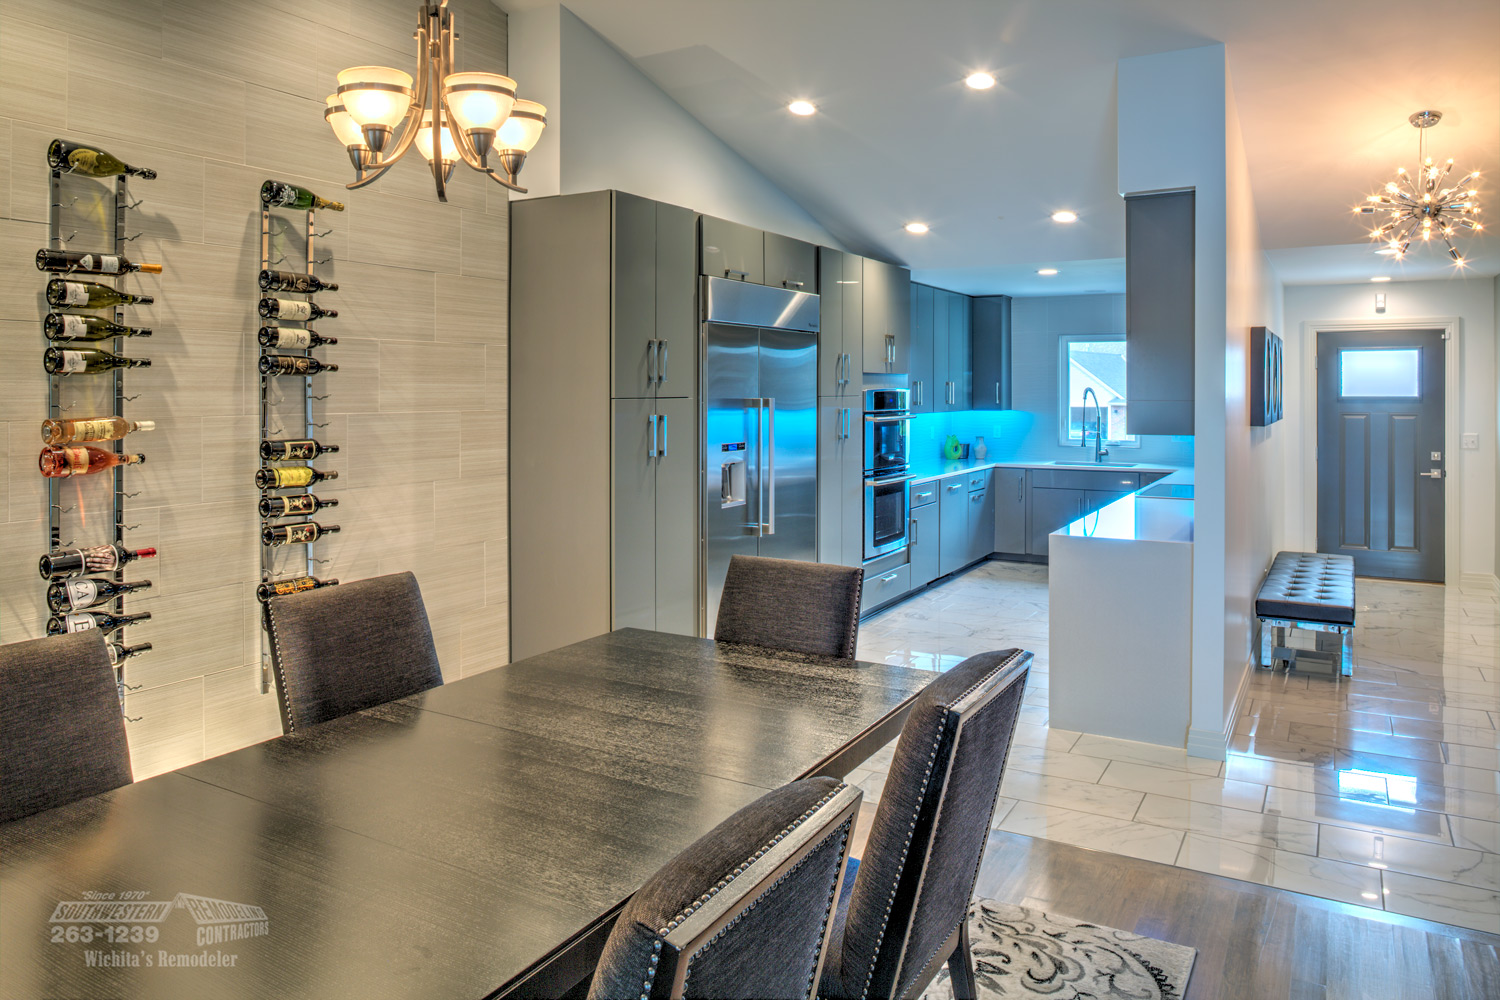 1 Room Additions Wichita Home Remodeler